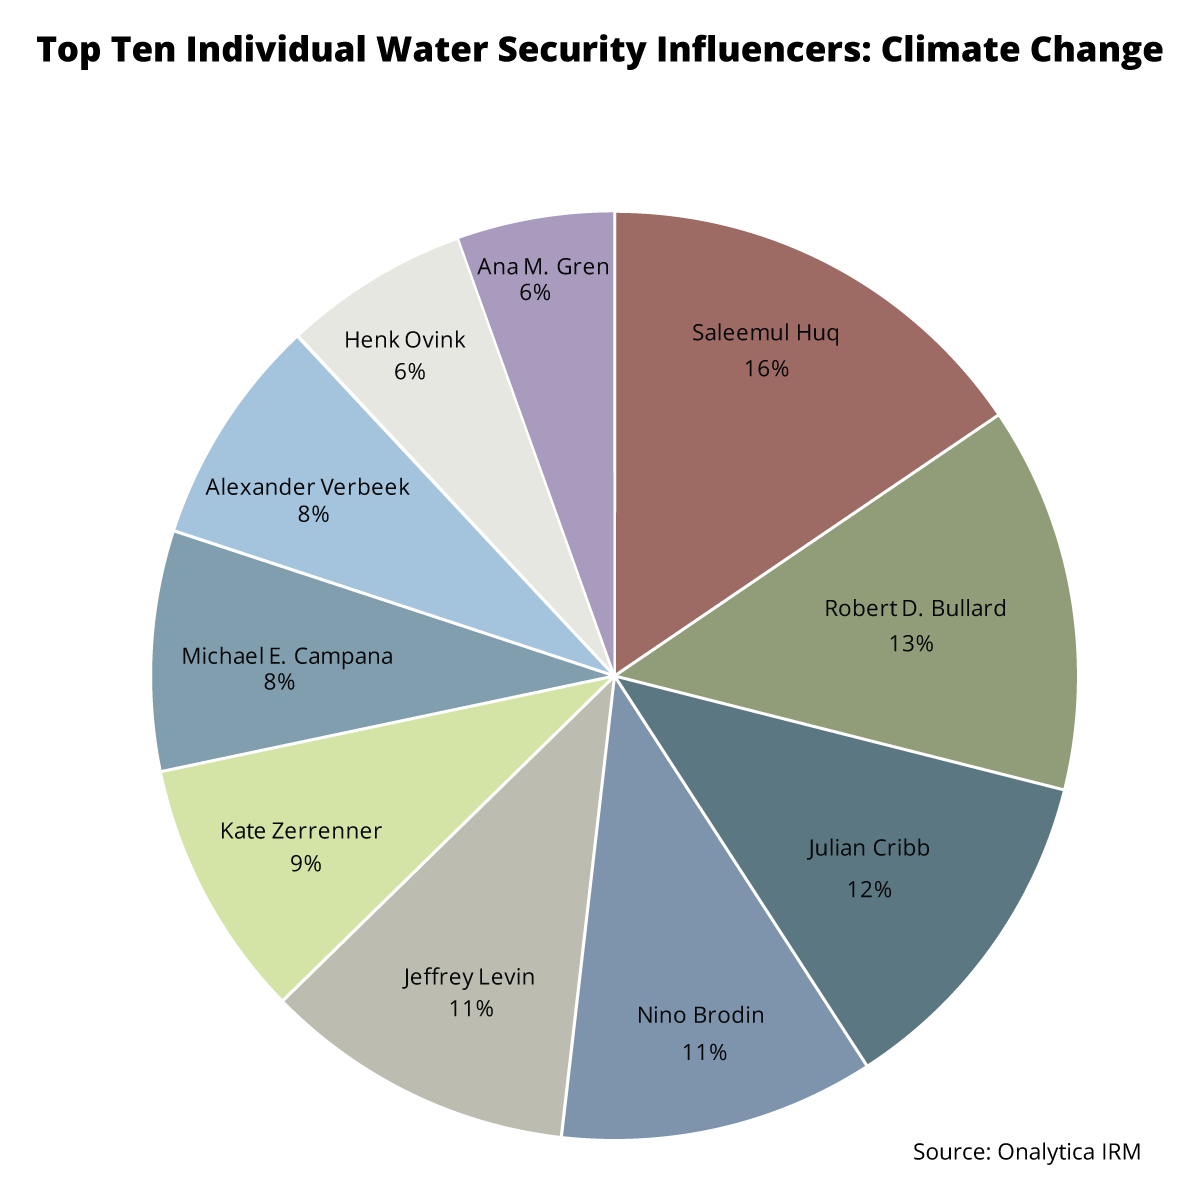 Top Ten Individual Water Security Influencers Discussing Climate Change